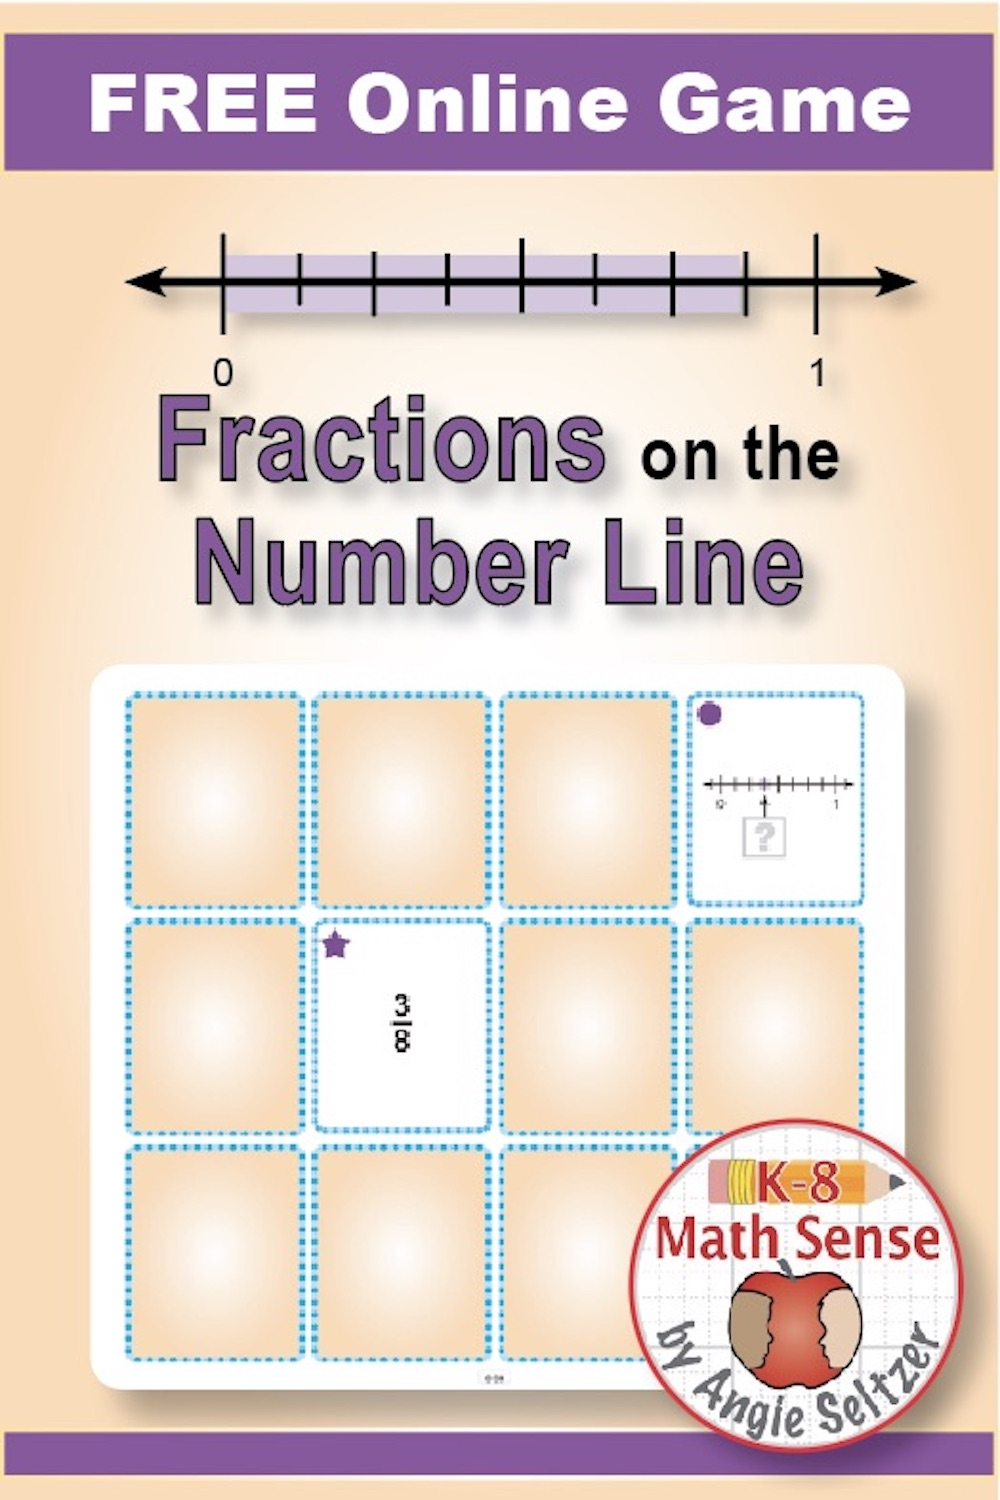 E-Game Fractions on the Number Line